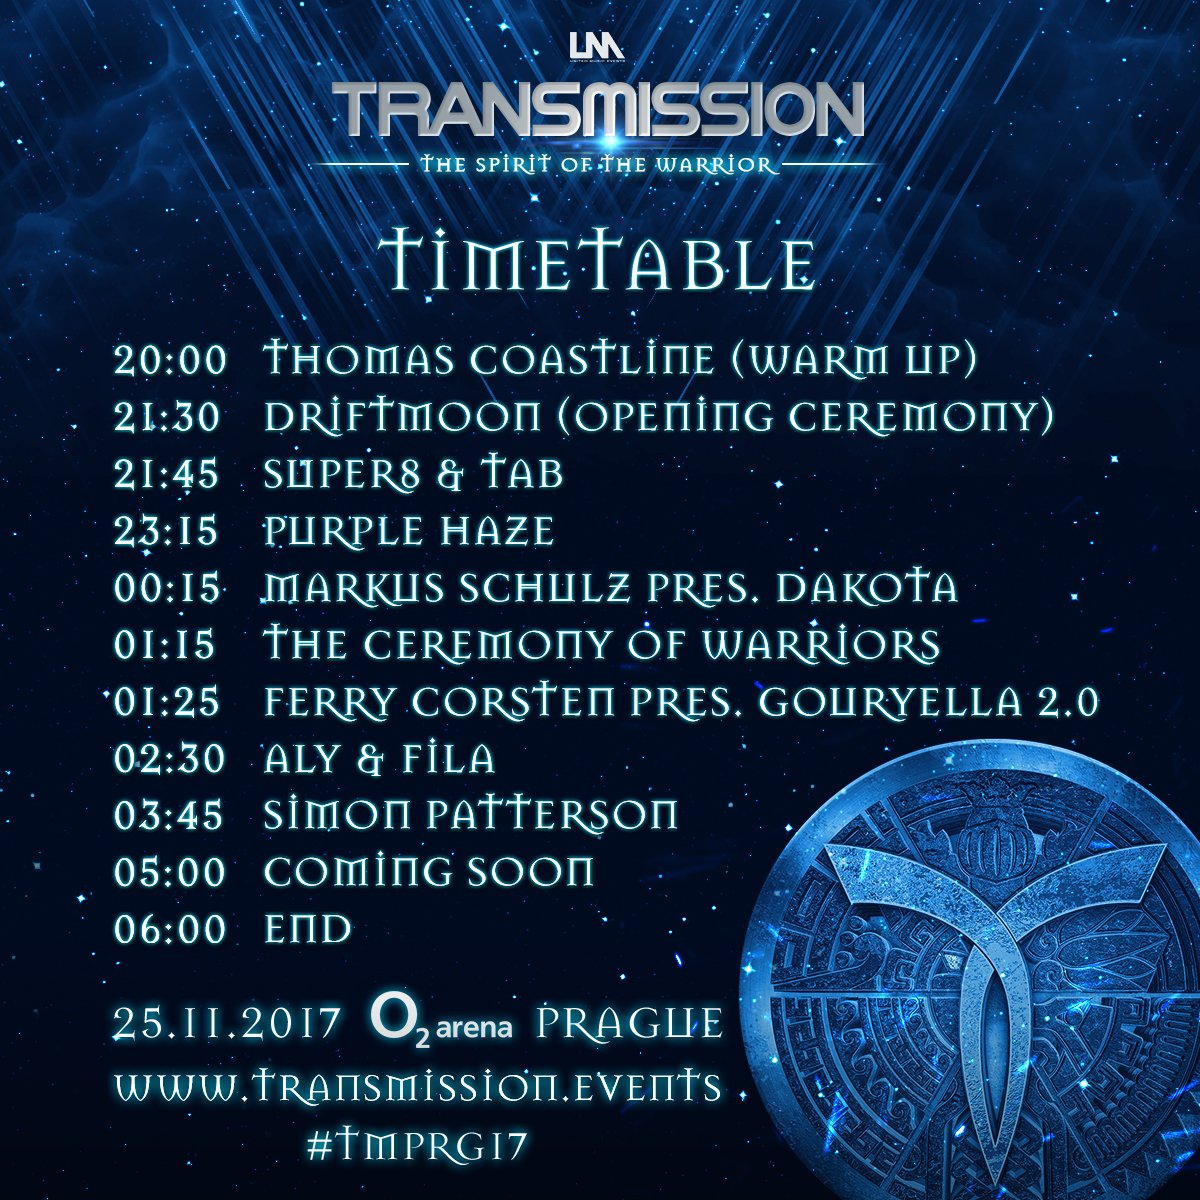 Transmission Festival On Twitter The Timetable And Last Info For Tmprg17 Is Now Available Https T Co Ierschasbj Enjoy The Transmission Weekend Trance Trancefamily Prague Https T Co L3h7xmw4z7